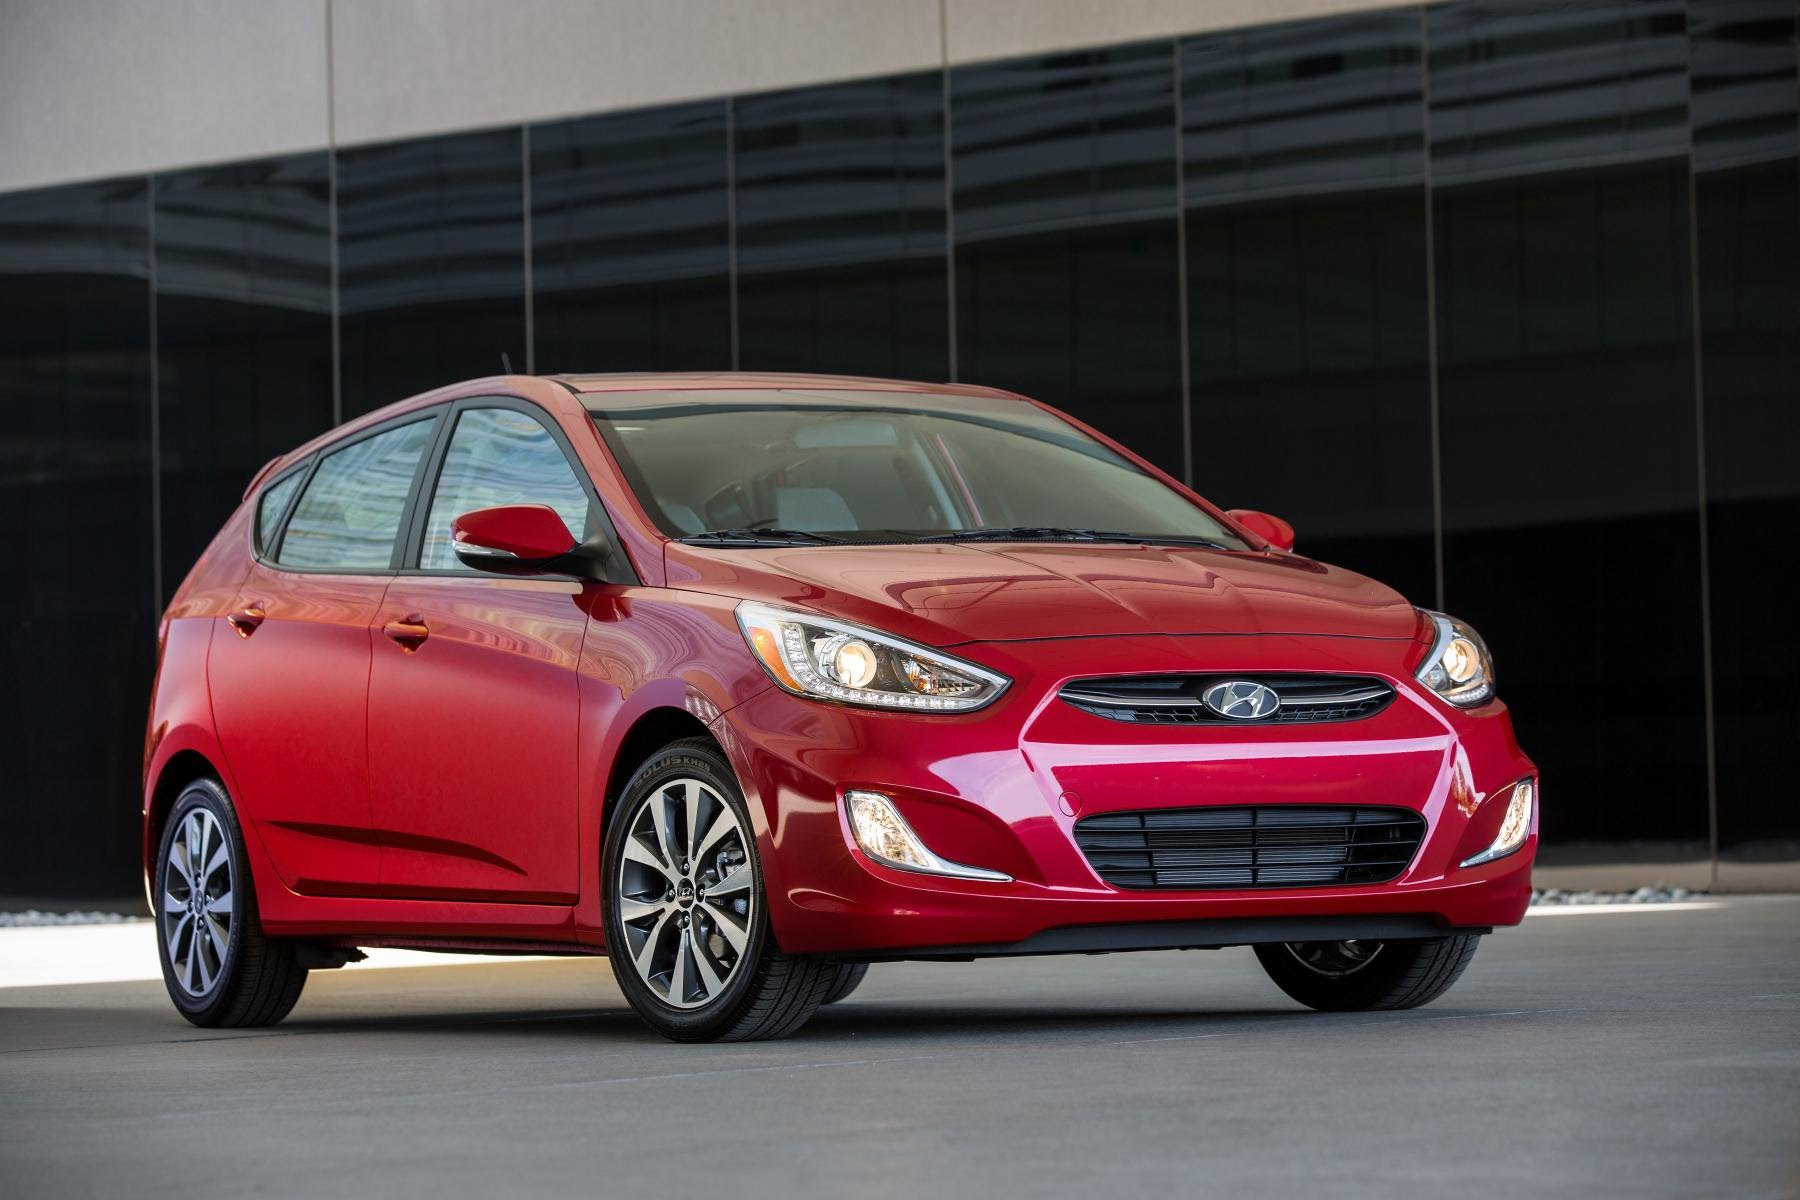 Hyundai Solaris I Restyling 2014 - now Hatchback 5 door #8